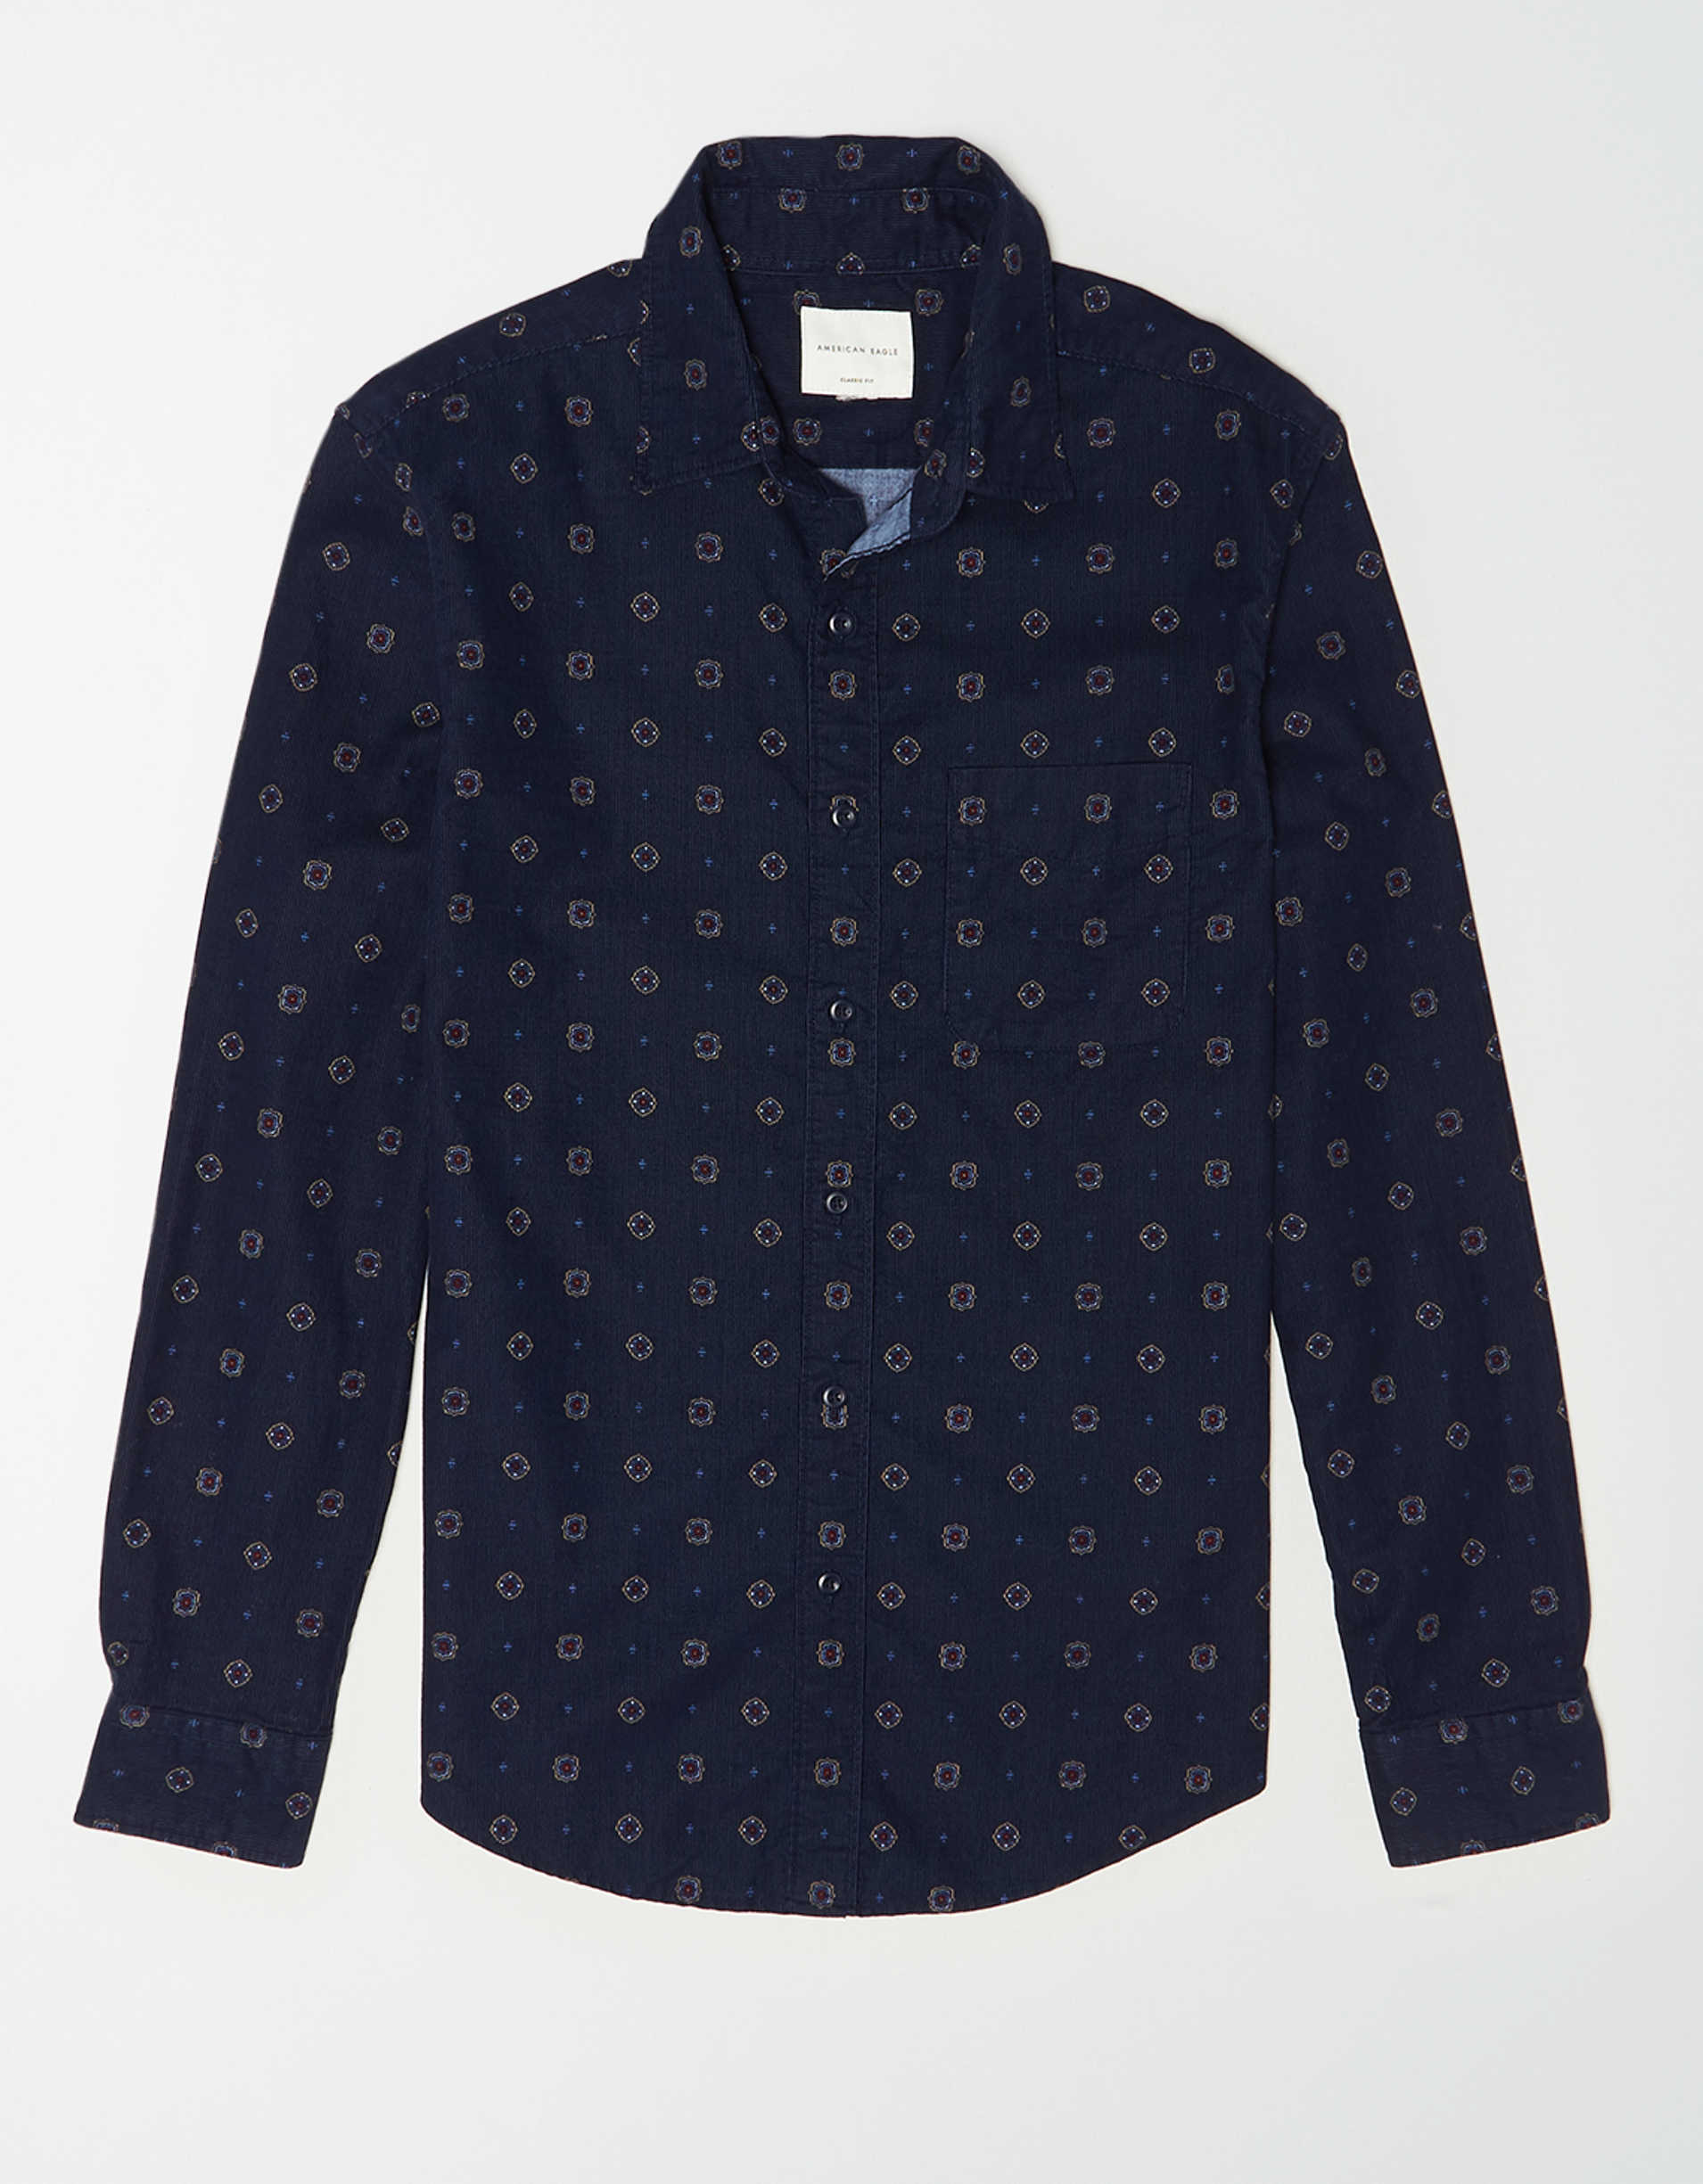 AE Printed Corduroy Button Up Shirt